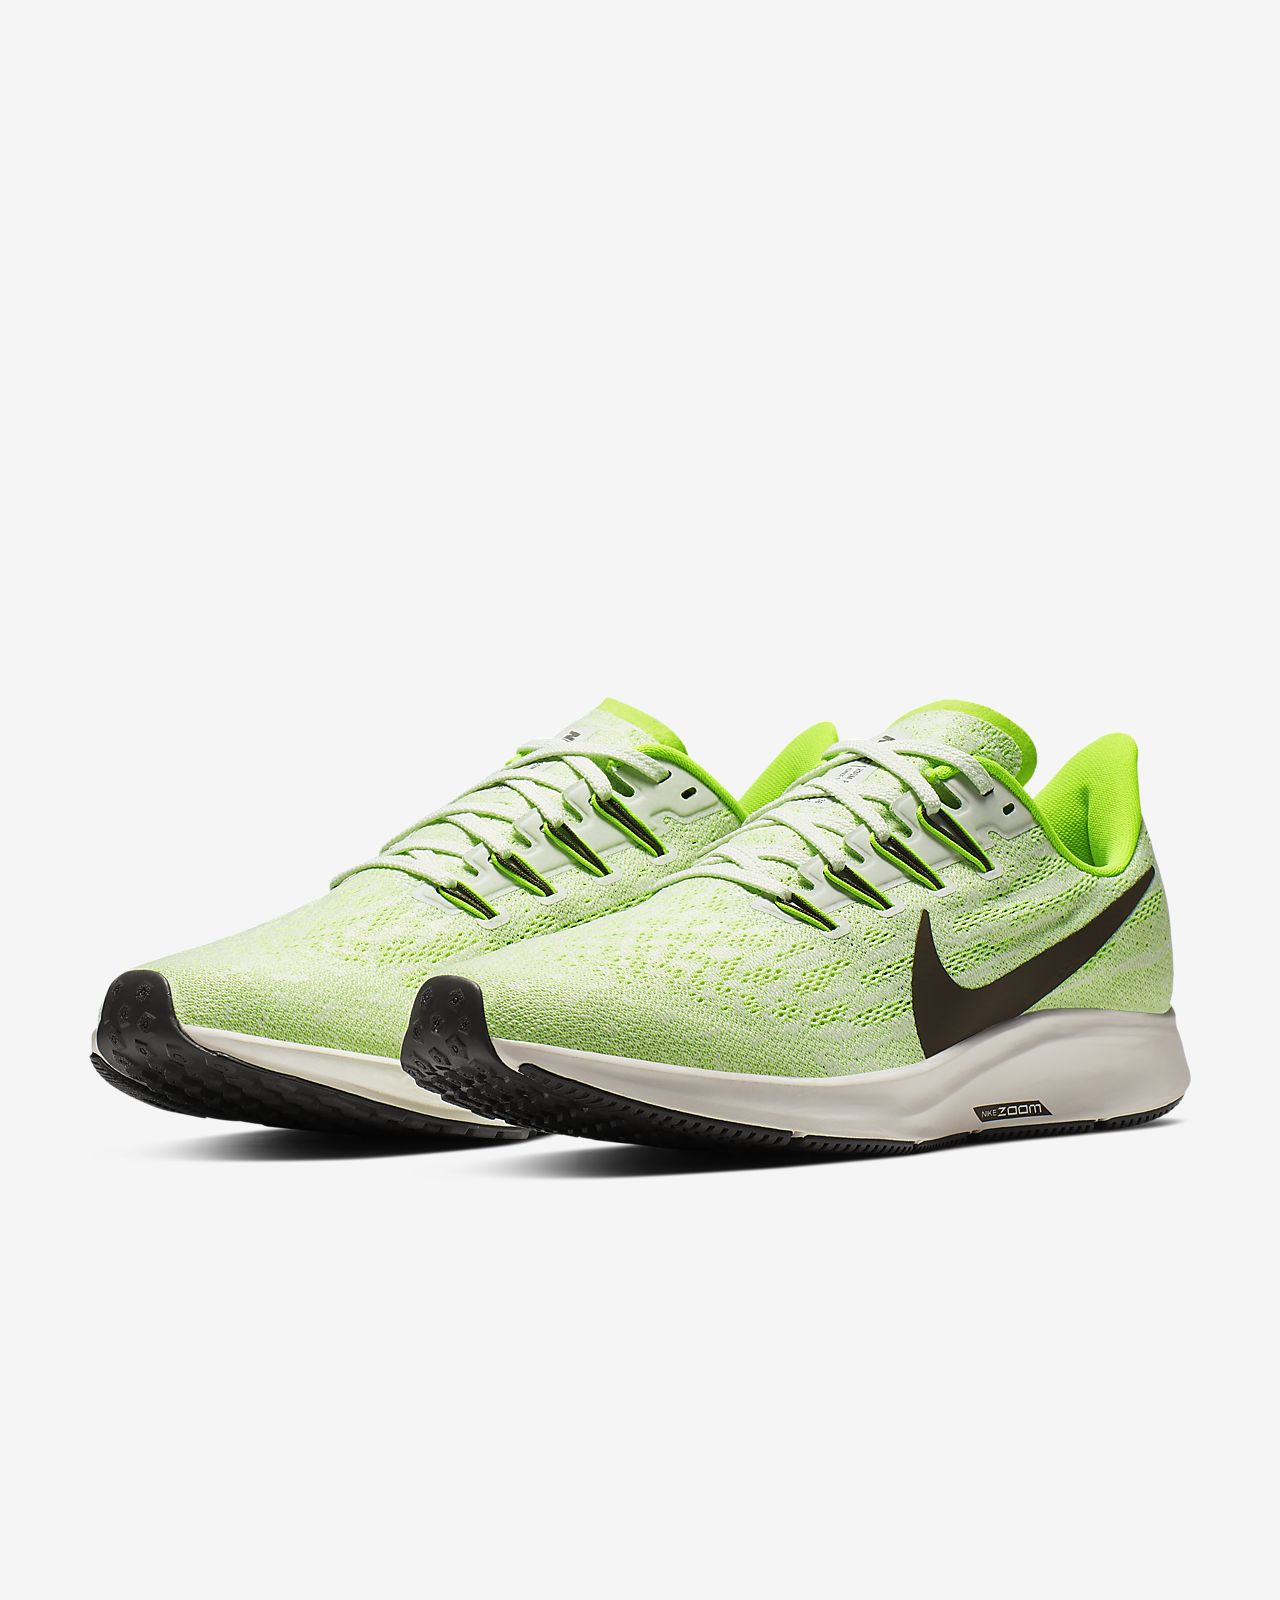 De 36 Running Chaussure Pegasus Zoom Pour Homme Nike Air Yvm7gbyIf6